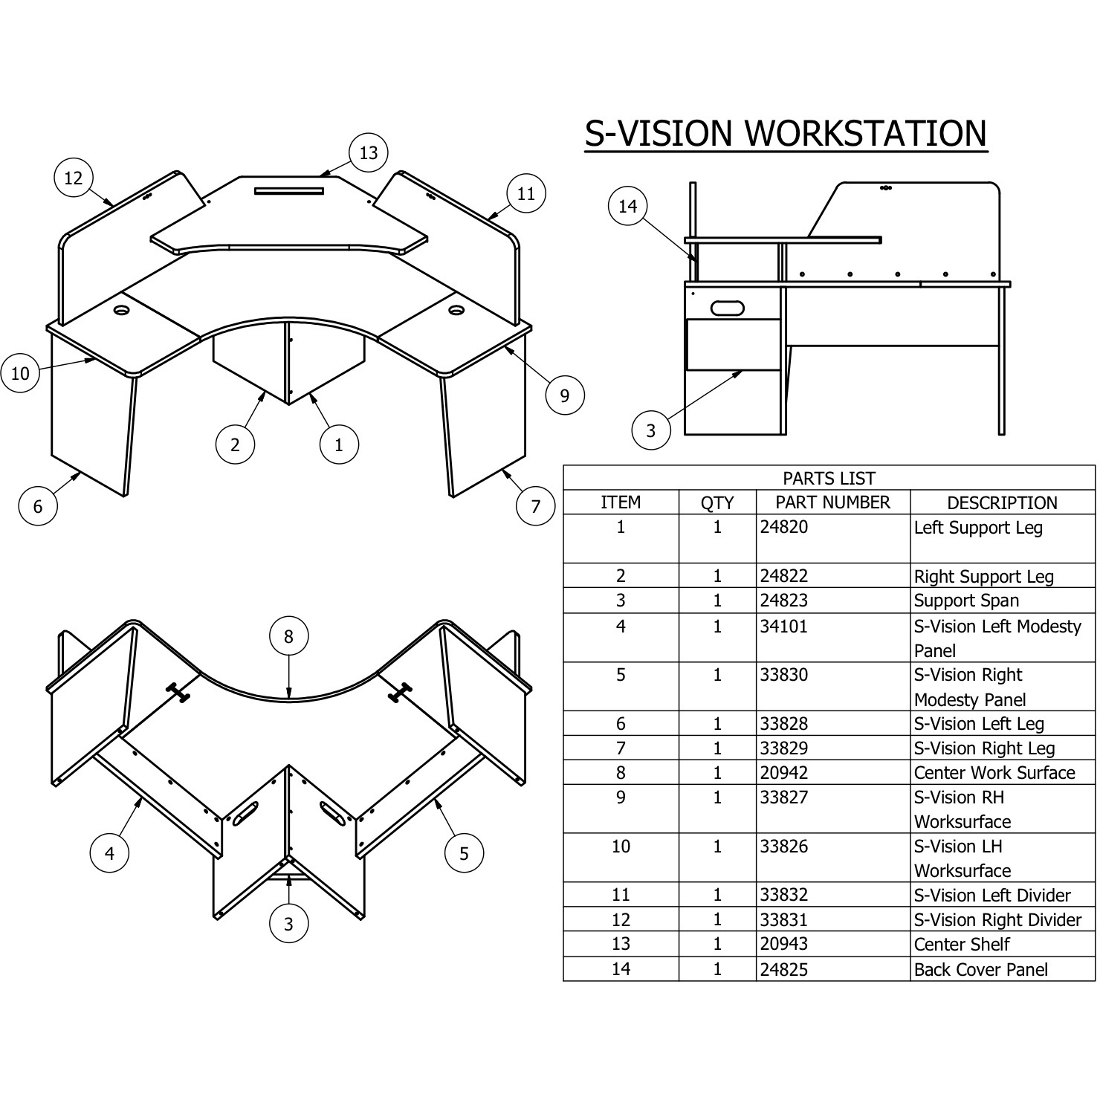 ... Items 1 And 2 For Vision Workstations And Figure 2, Items 1 And 2 For S Vision  Furniture). There Is About An Inch Of Adjustment Built Into Each ...